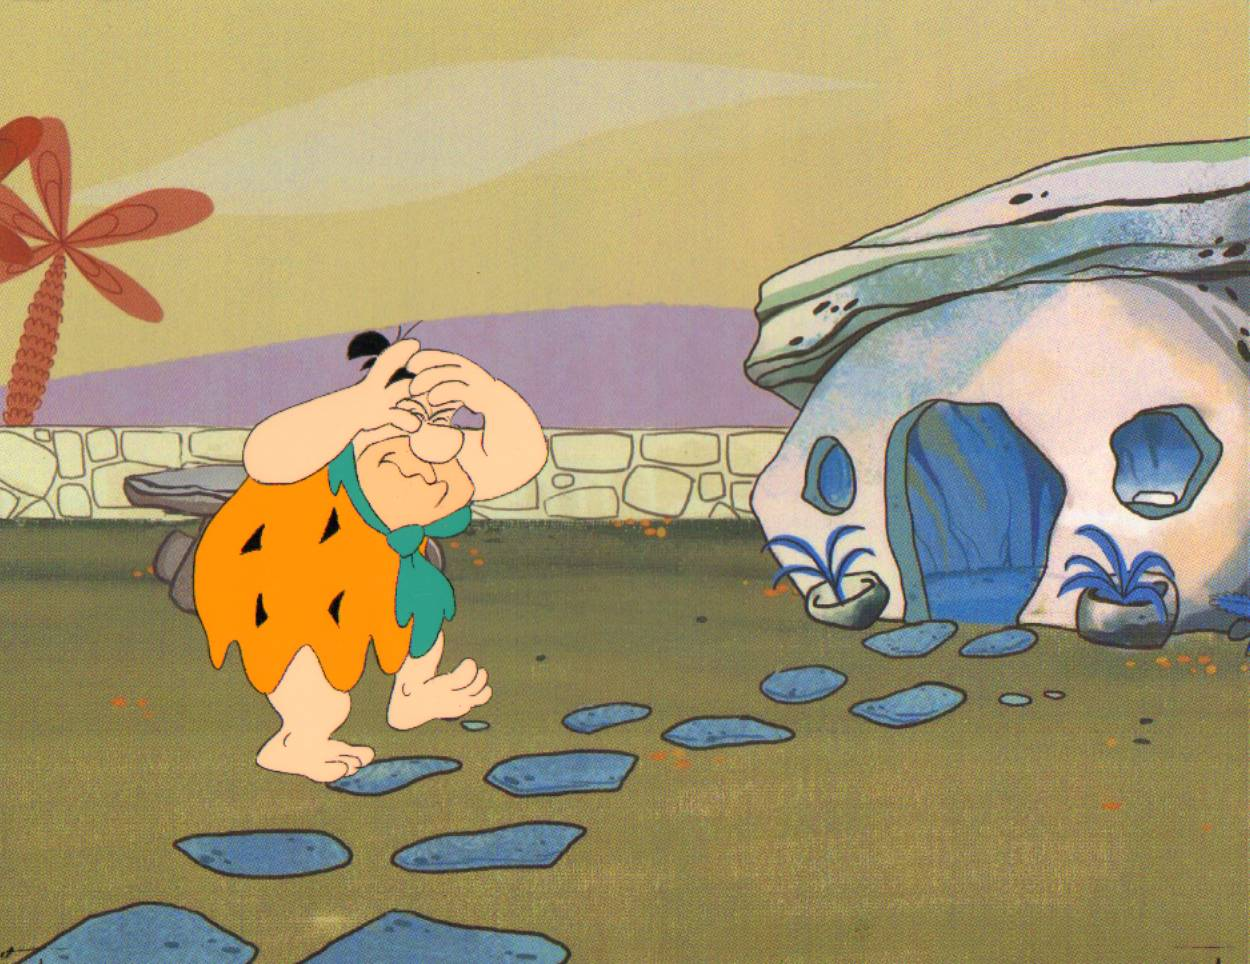 Flintstone Wallpaper Flintstones Cartoons Wallpapers Cartoon 1250x964